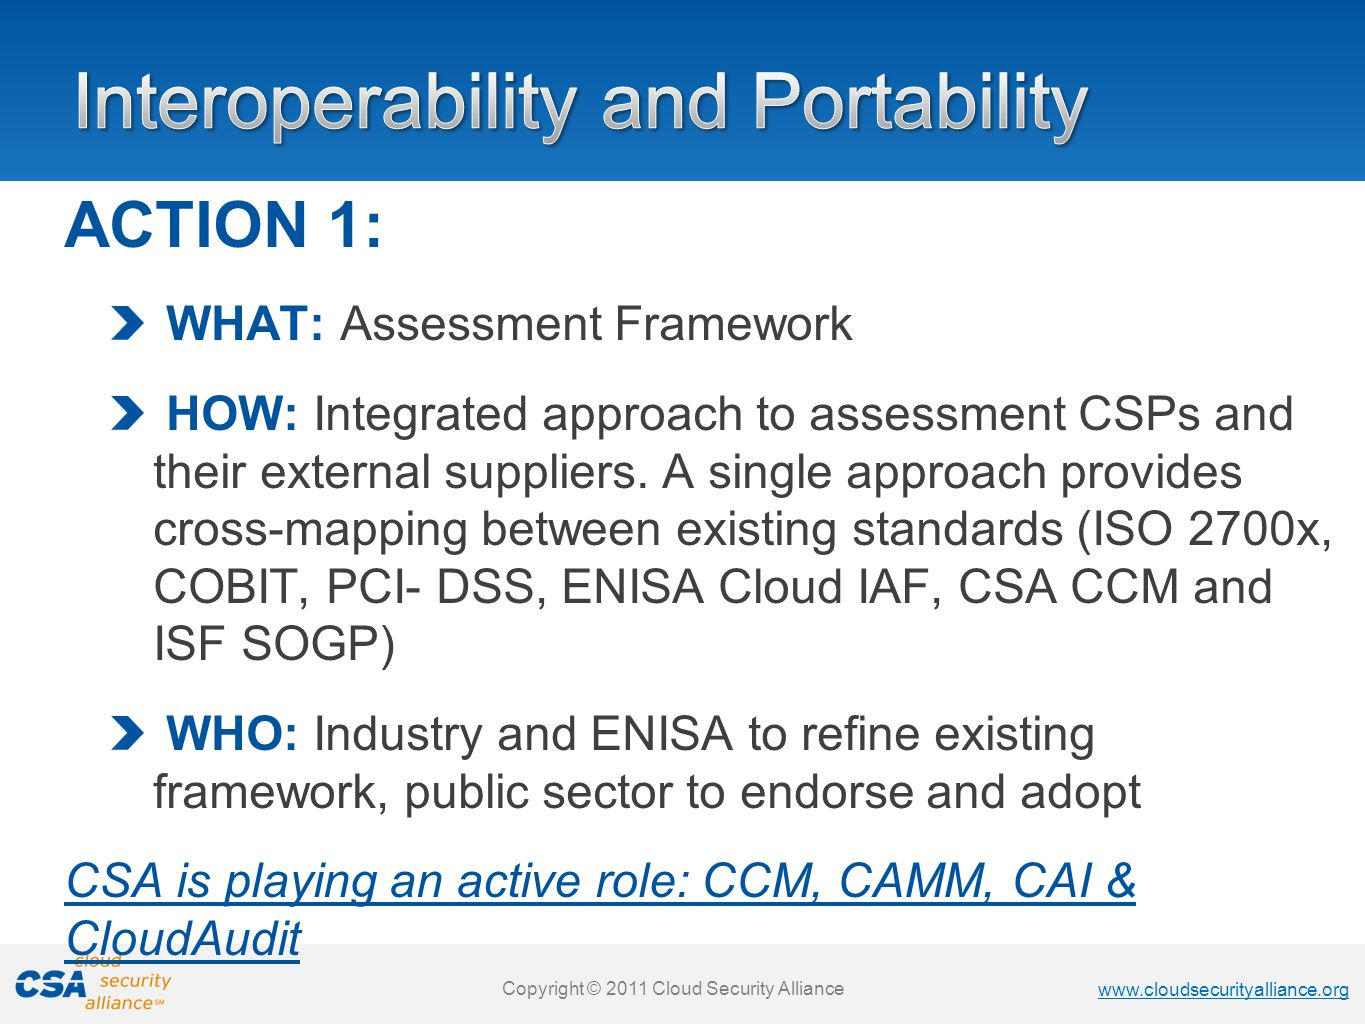 www.cloudsecurityalliance.org Copyright © 2011 Cloud Security Alliance www.cloudsecurityalliance.org Copyright © 2011 Cloud Security Alliance www.cloudsecurityalliance.org Copyright © 2011 Cloud Security Alliance www.cloudsecurityalliance.org Copyright © 2011 Cloud Security Alliance ACTION 1: WHAT: Assessment Framework HOW: Integrated approach to assessment CSPs and their external suppliers.